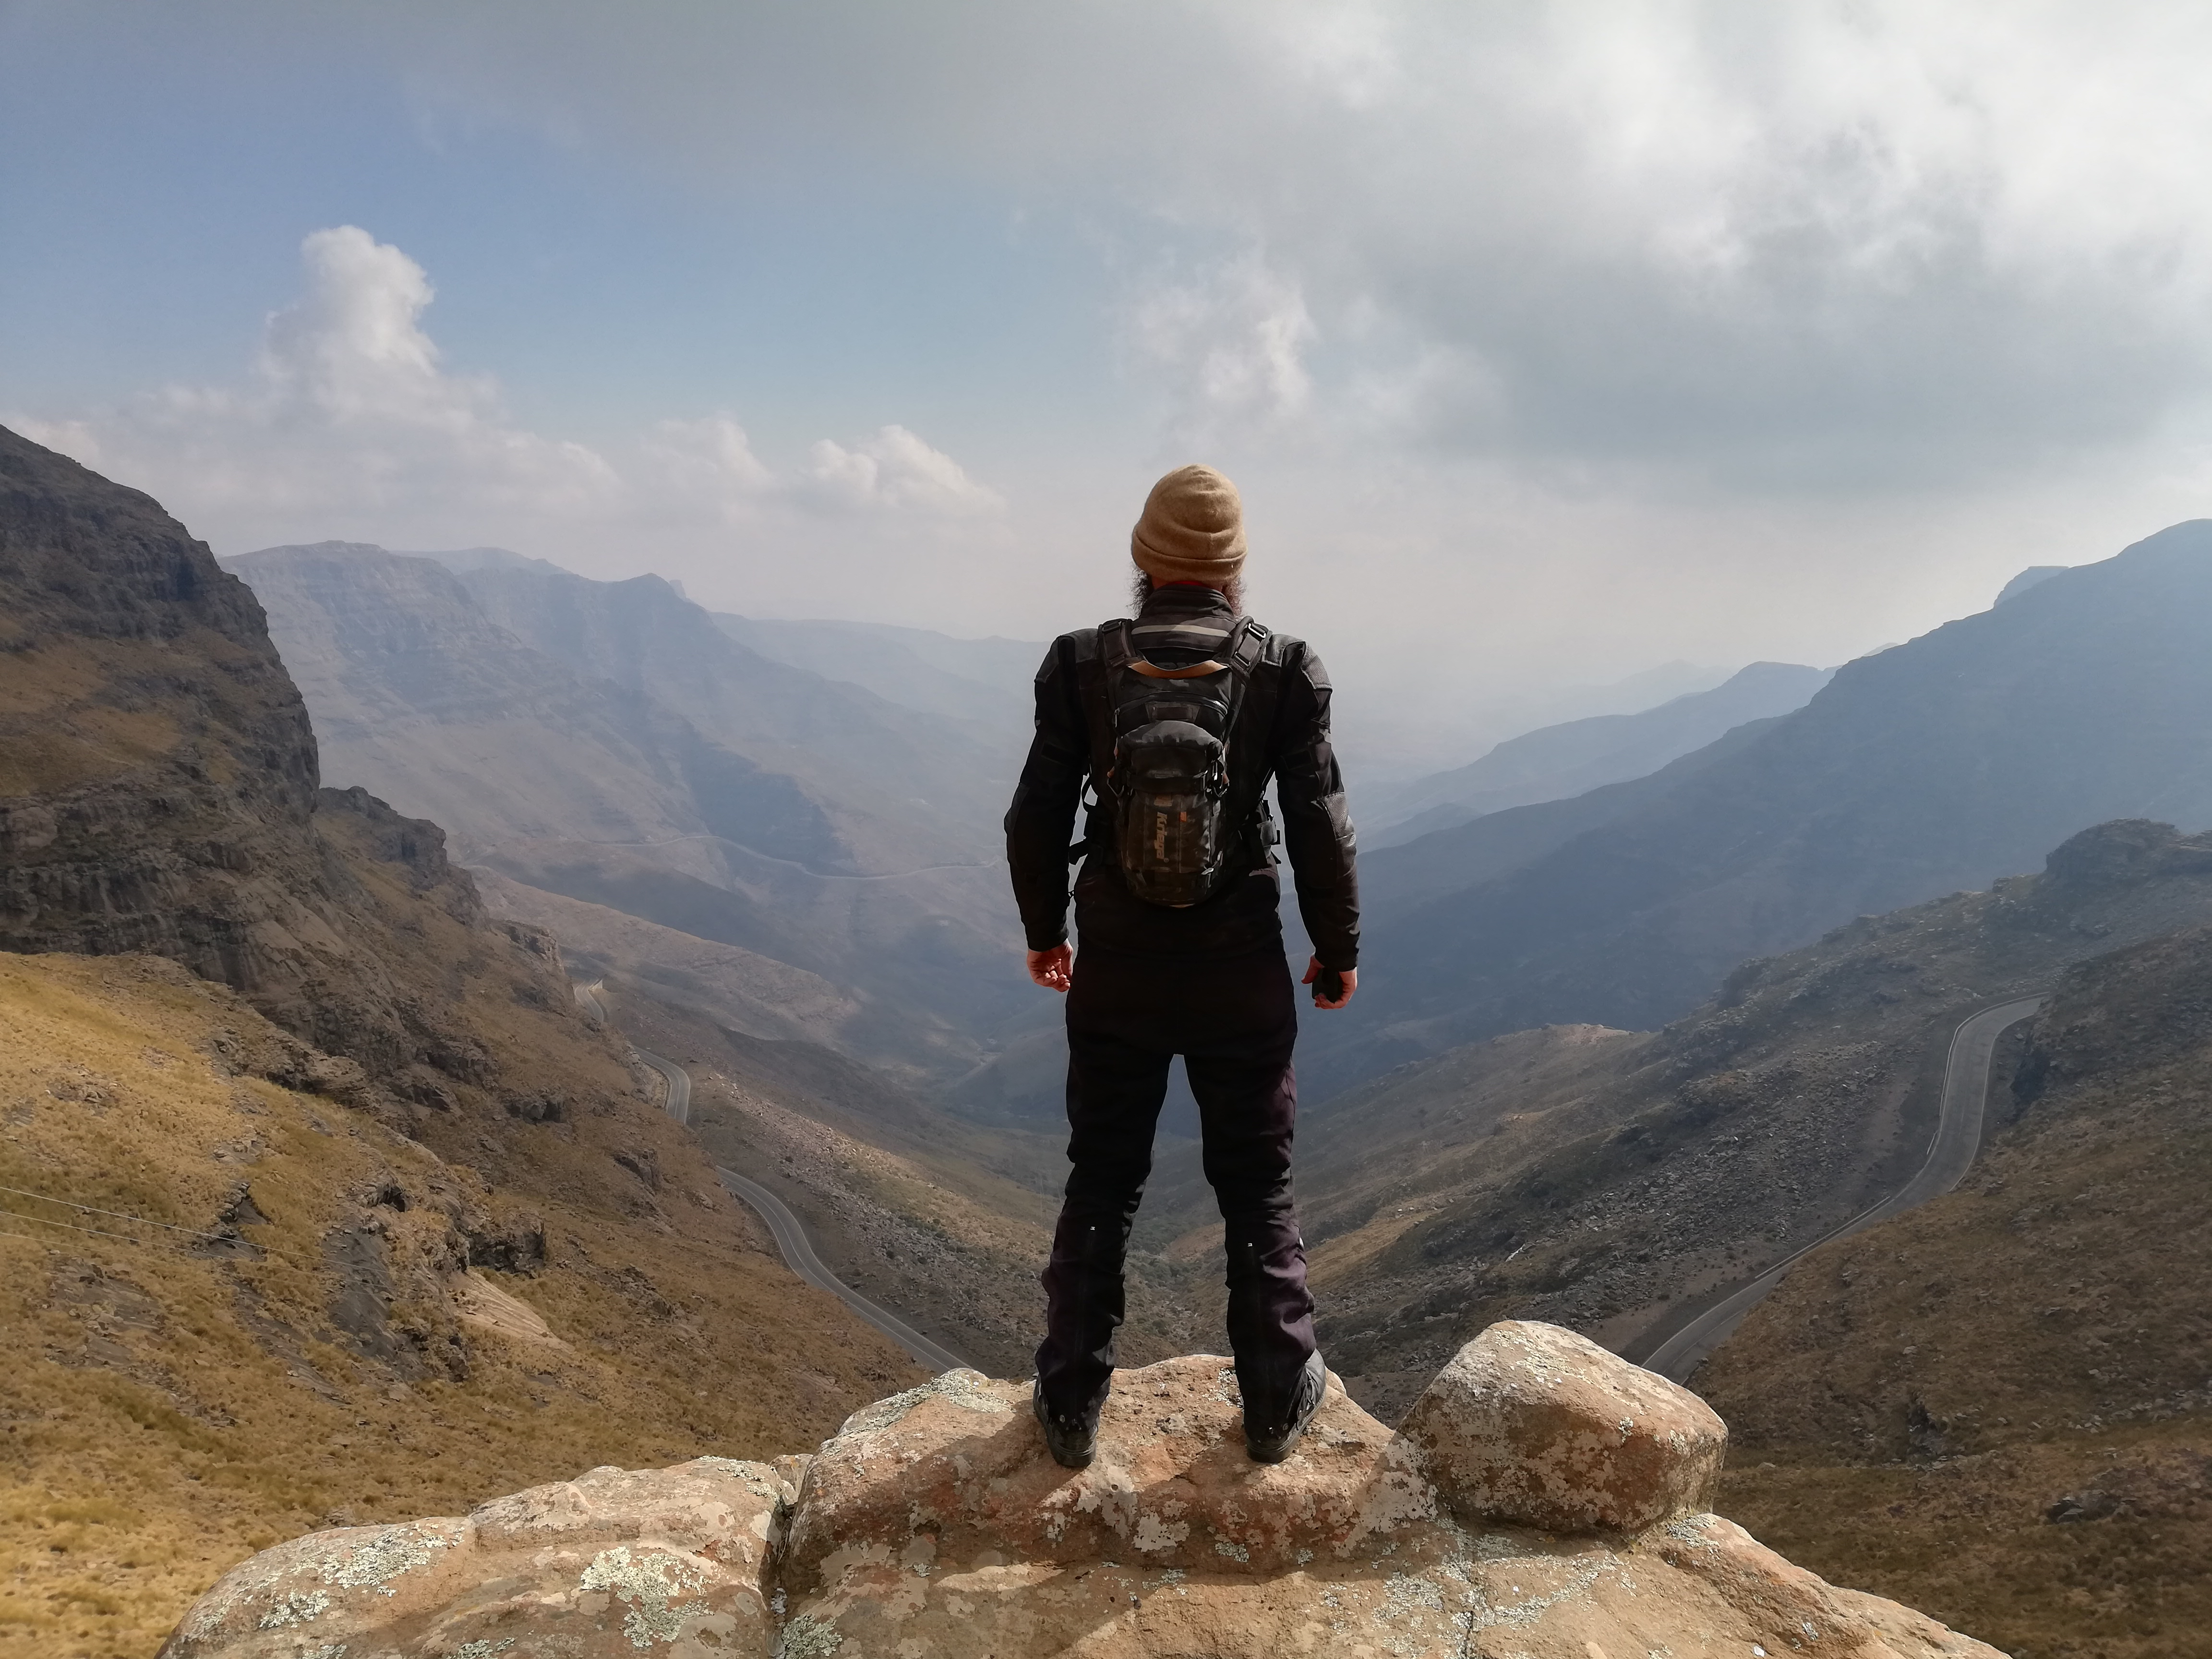 Viewing Mafika Lisiu Pass at 3090 metres above sea level in Lesotho. Huge thanks to @its_moodo for the photo.